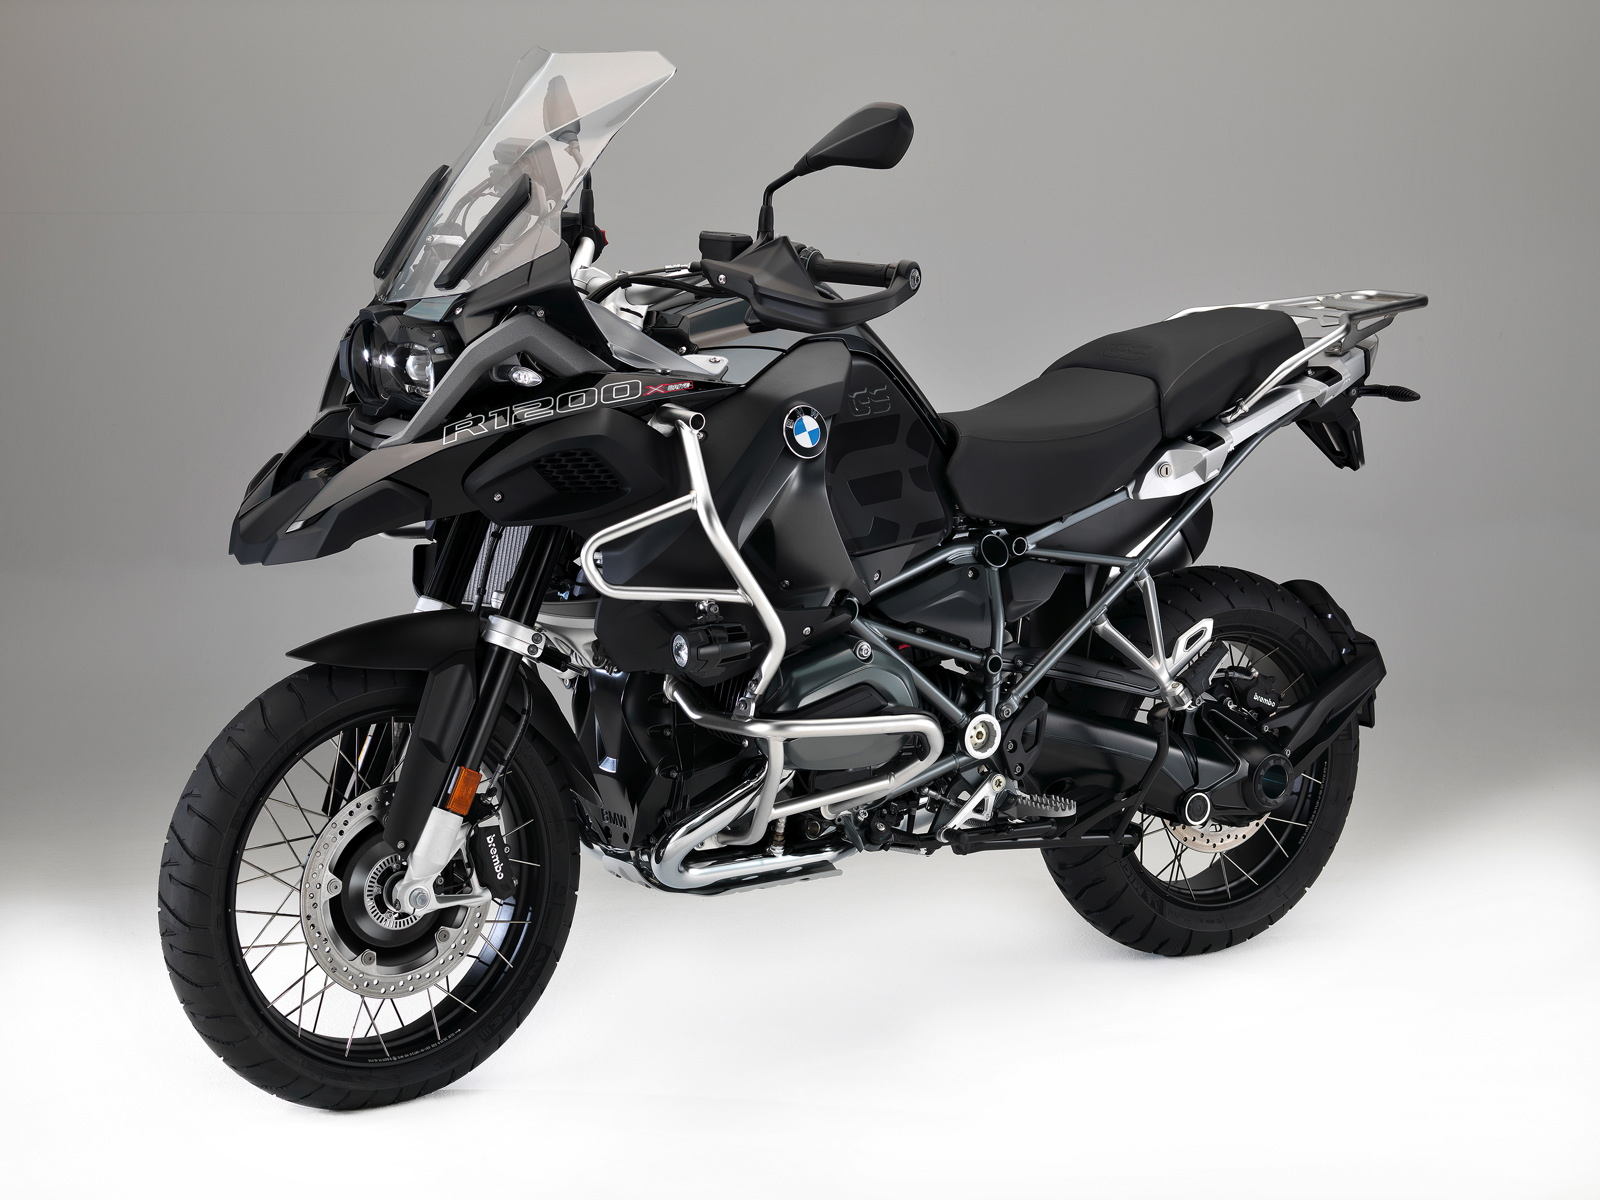 Bmw Hybrid Motorcycle 01 750x563